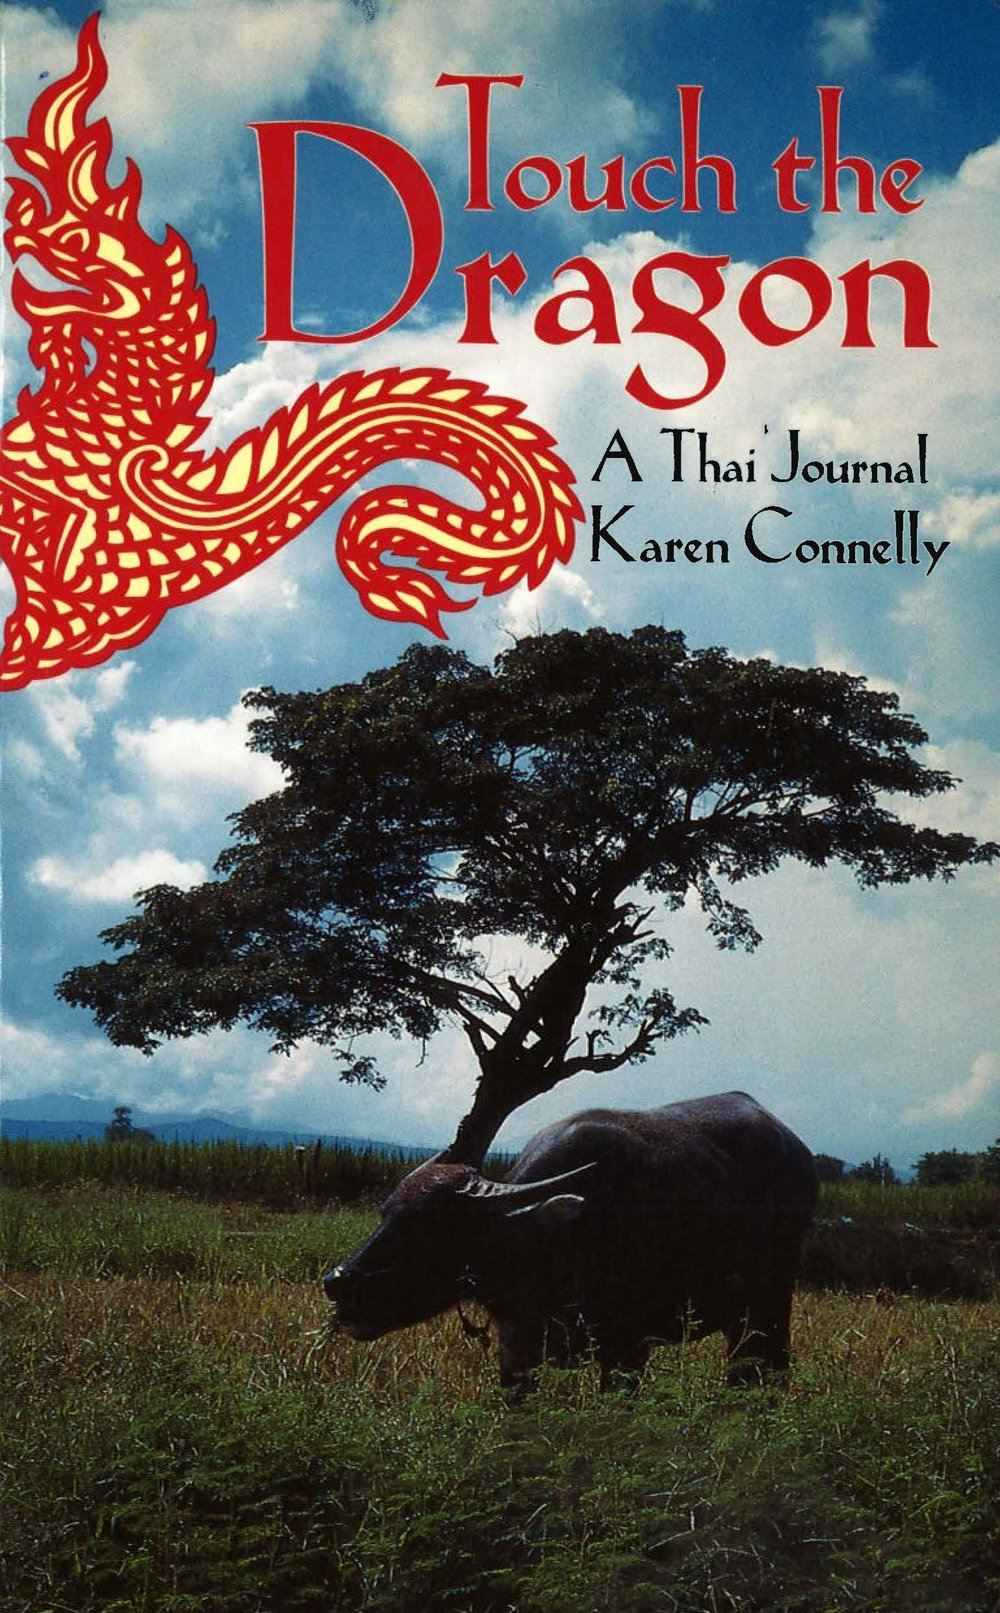 First Edition, 1992